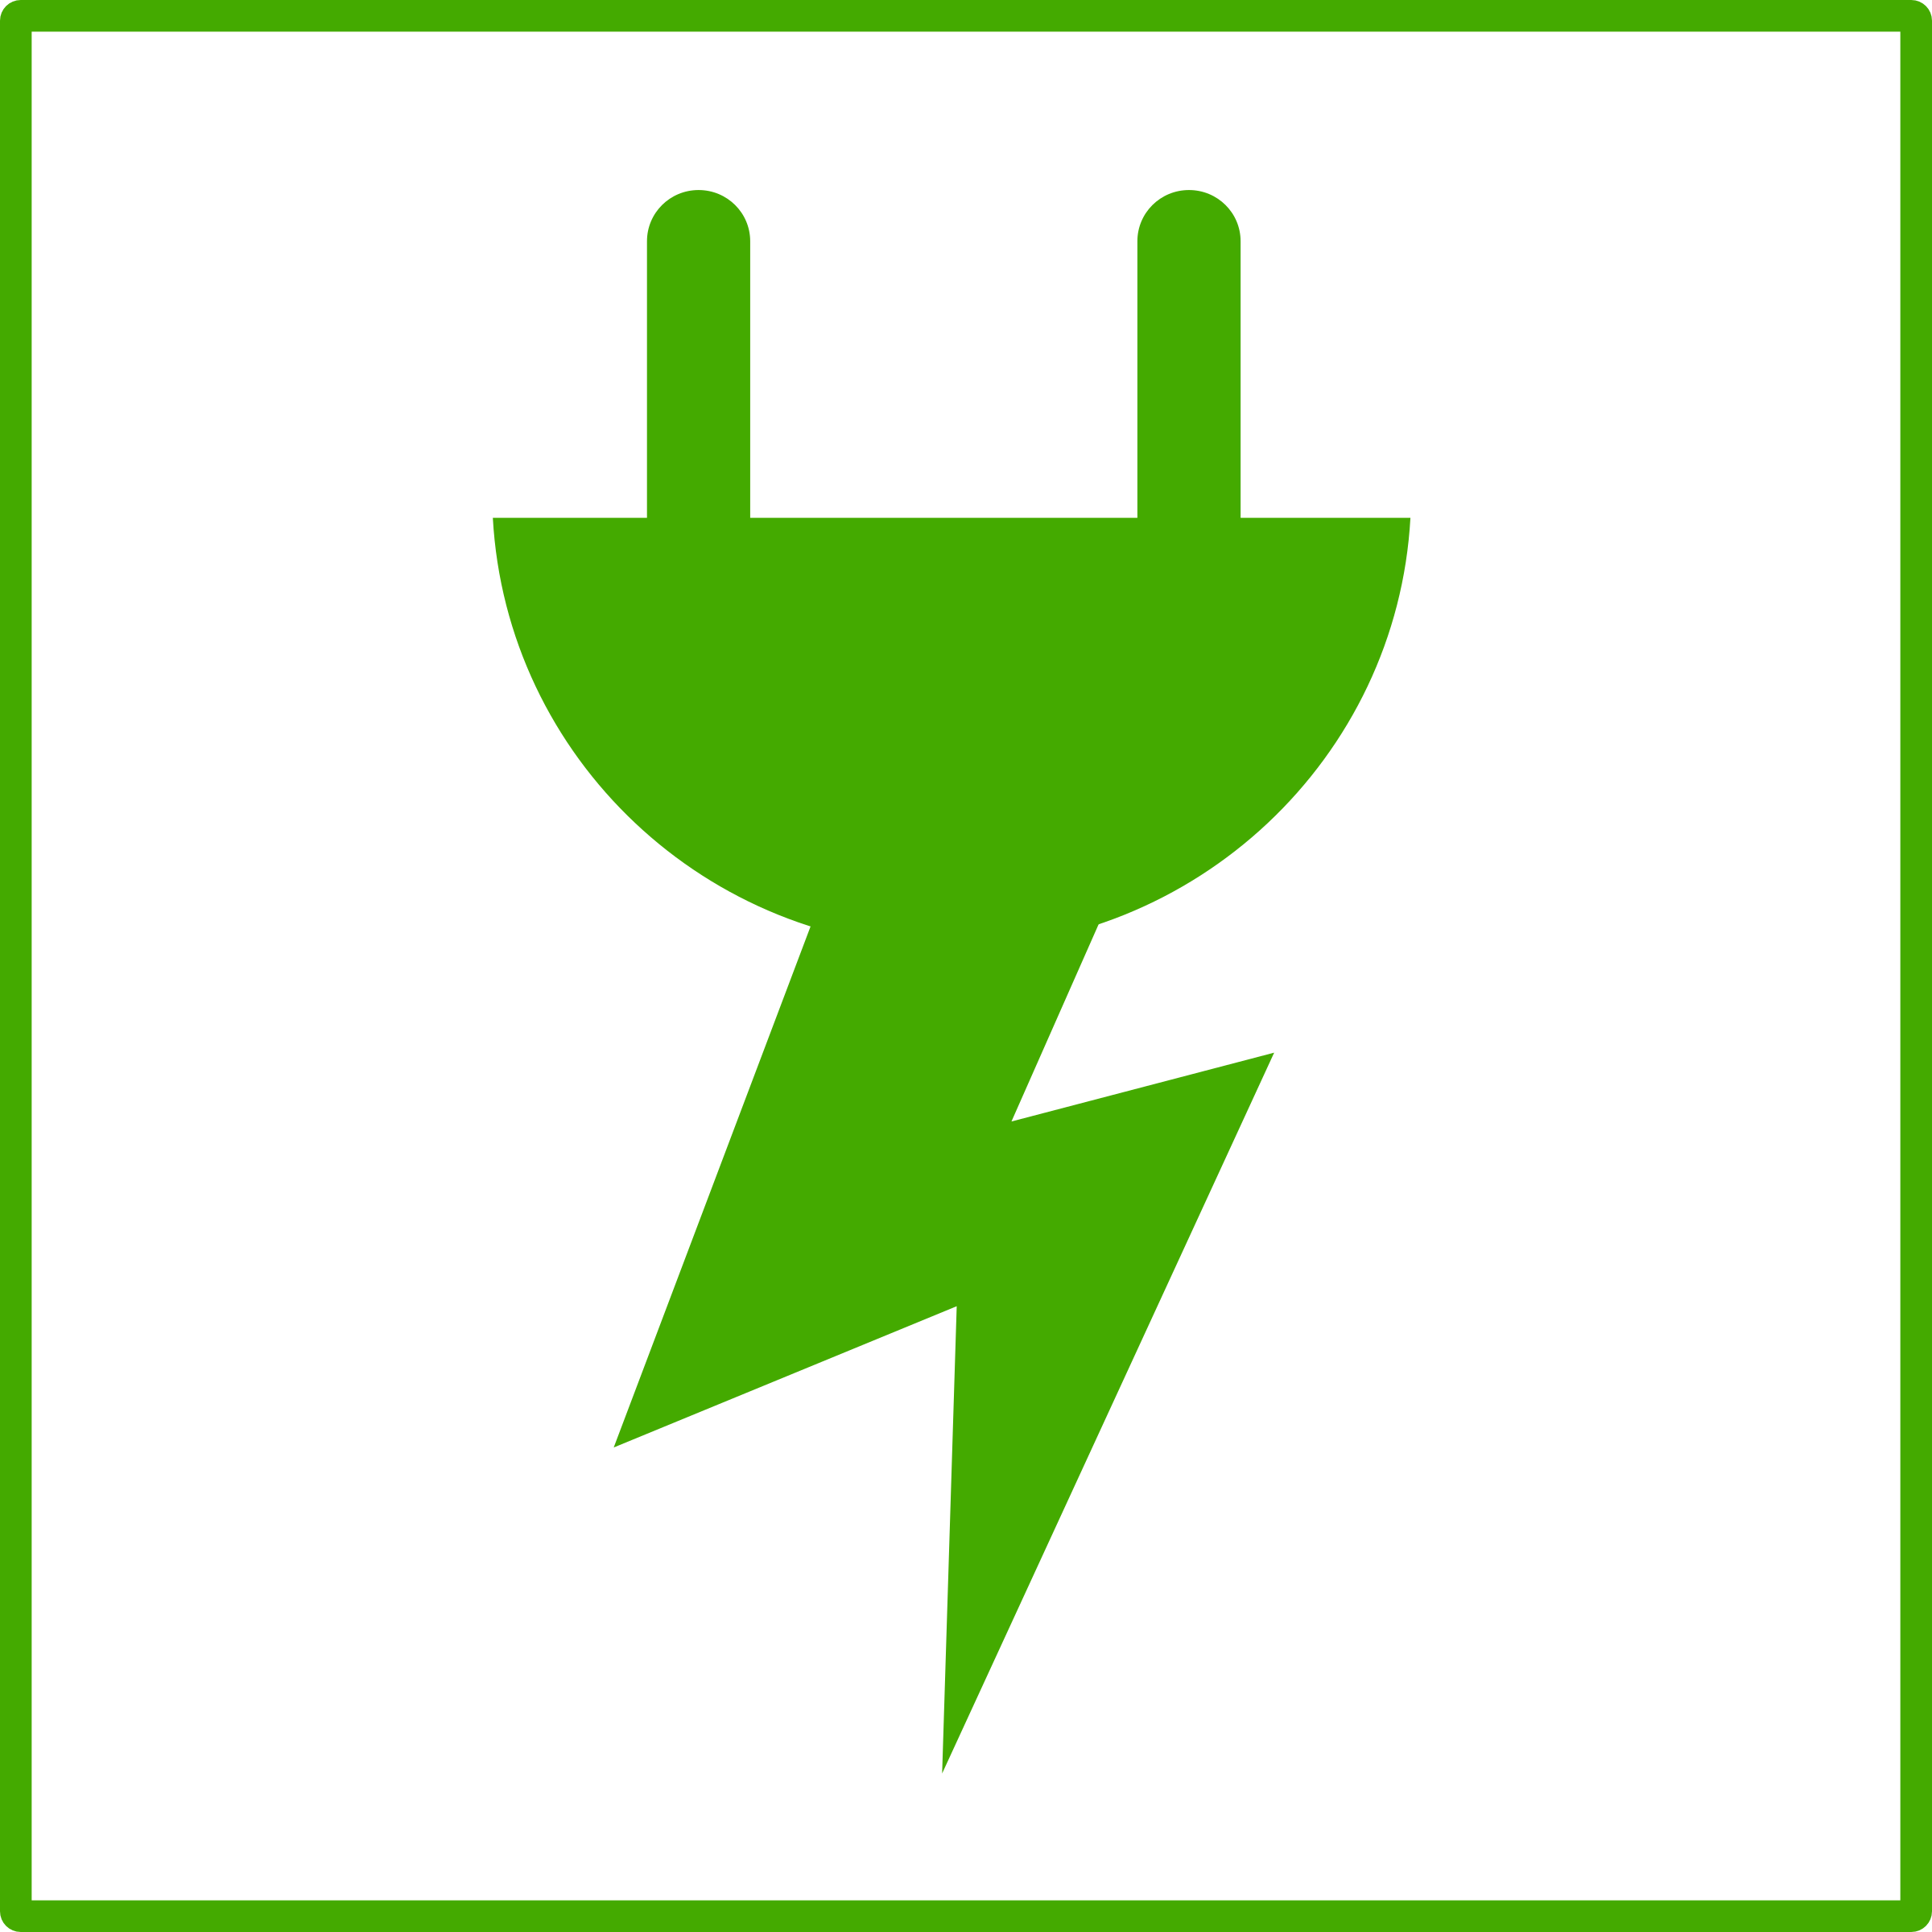 Energy clipart energy transformation.  collection of use